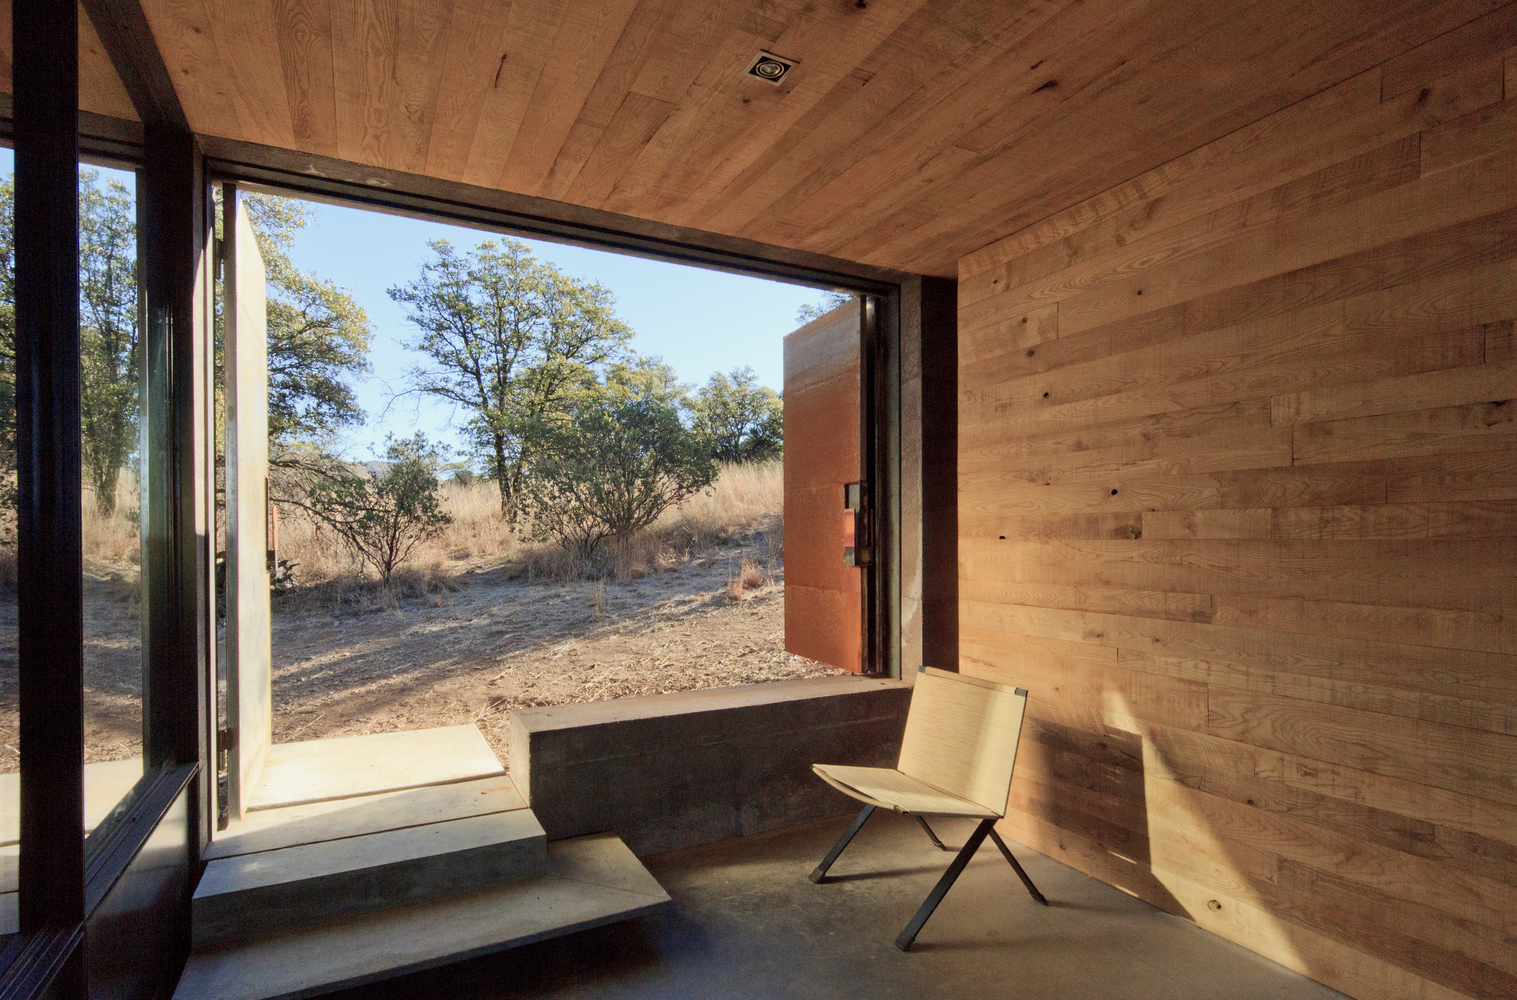 "Casa Caldera by DUST Architects is a completely custom-built Tucson, Arizona retreat. ""Only thirty yards of waste, one roll-off, was created in the making of Casa Caldera."" While a beautiful project, this type of eco-footprint needs to be made available to more than just an eco-elite."